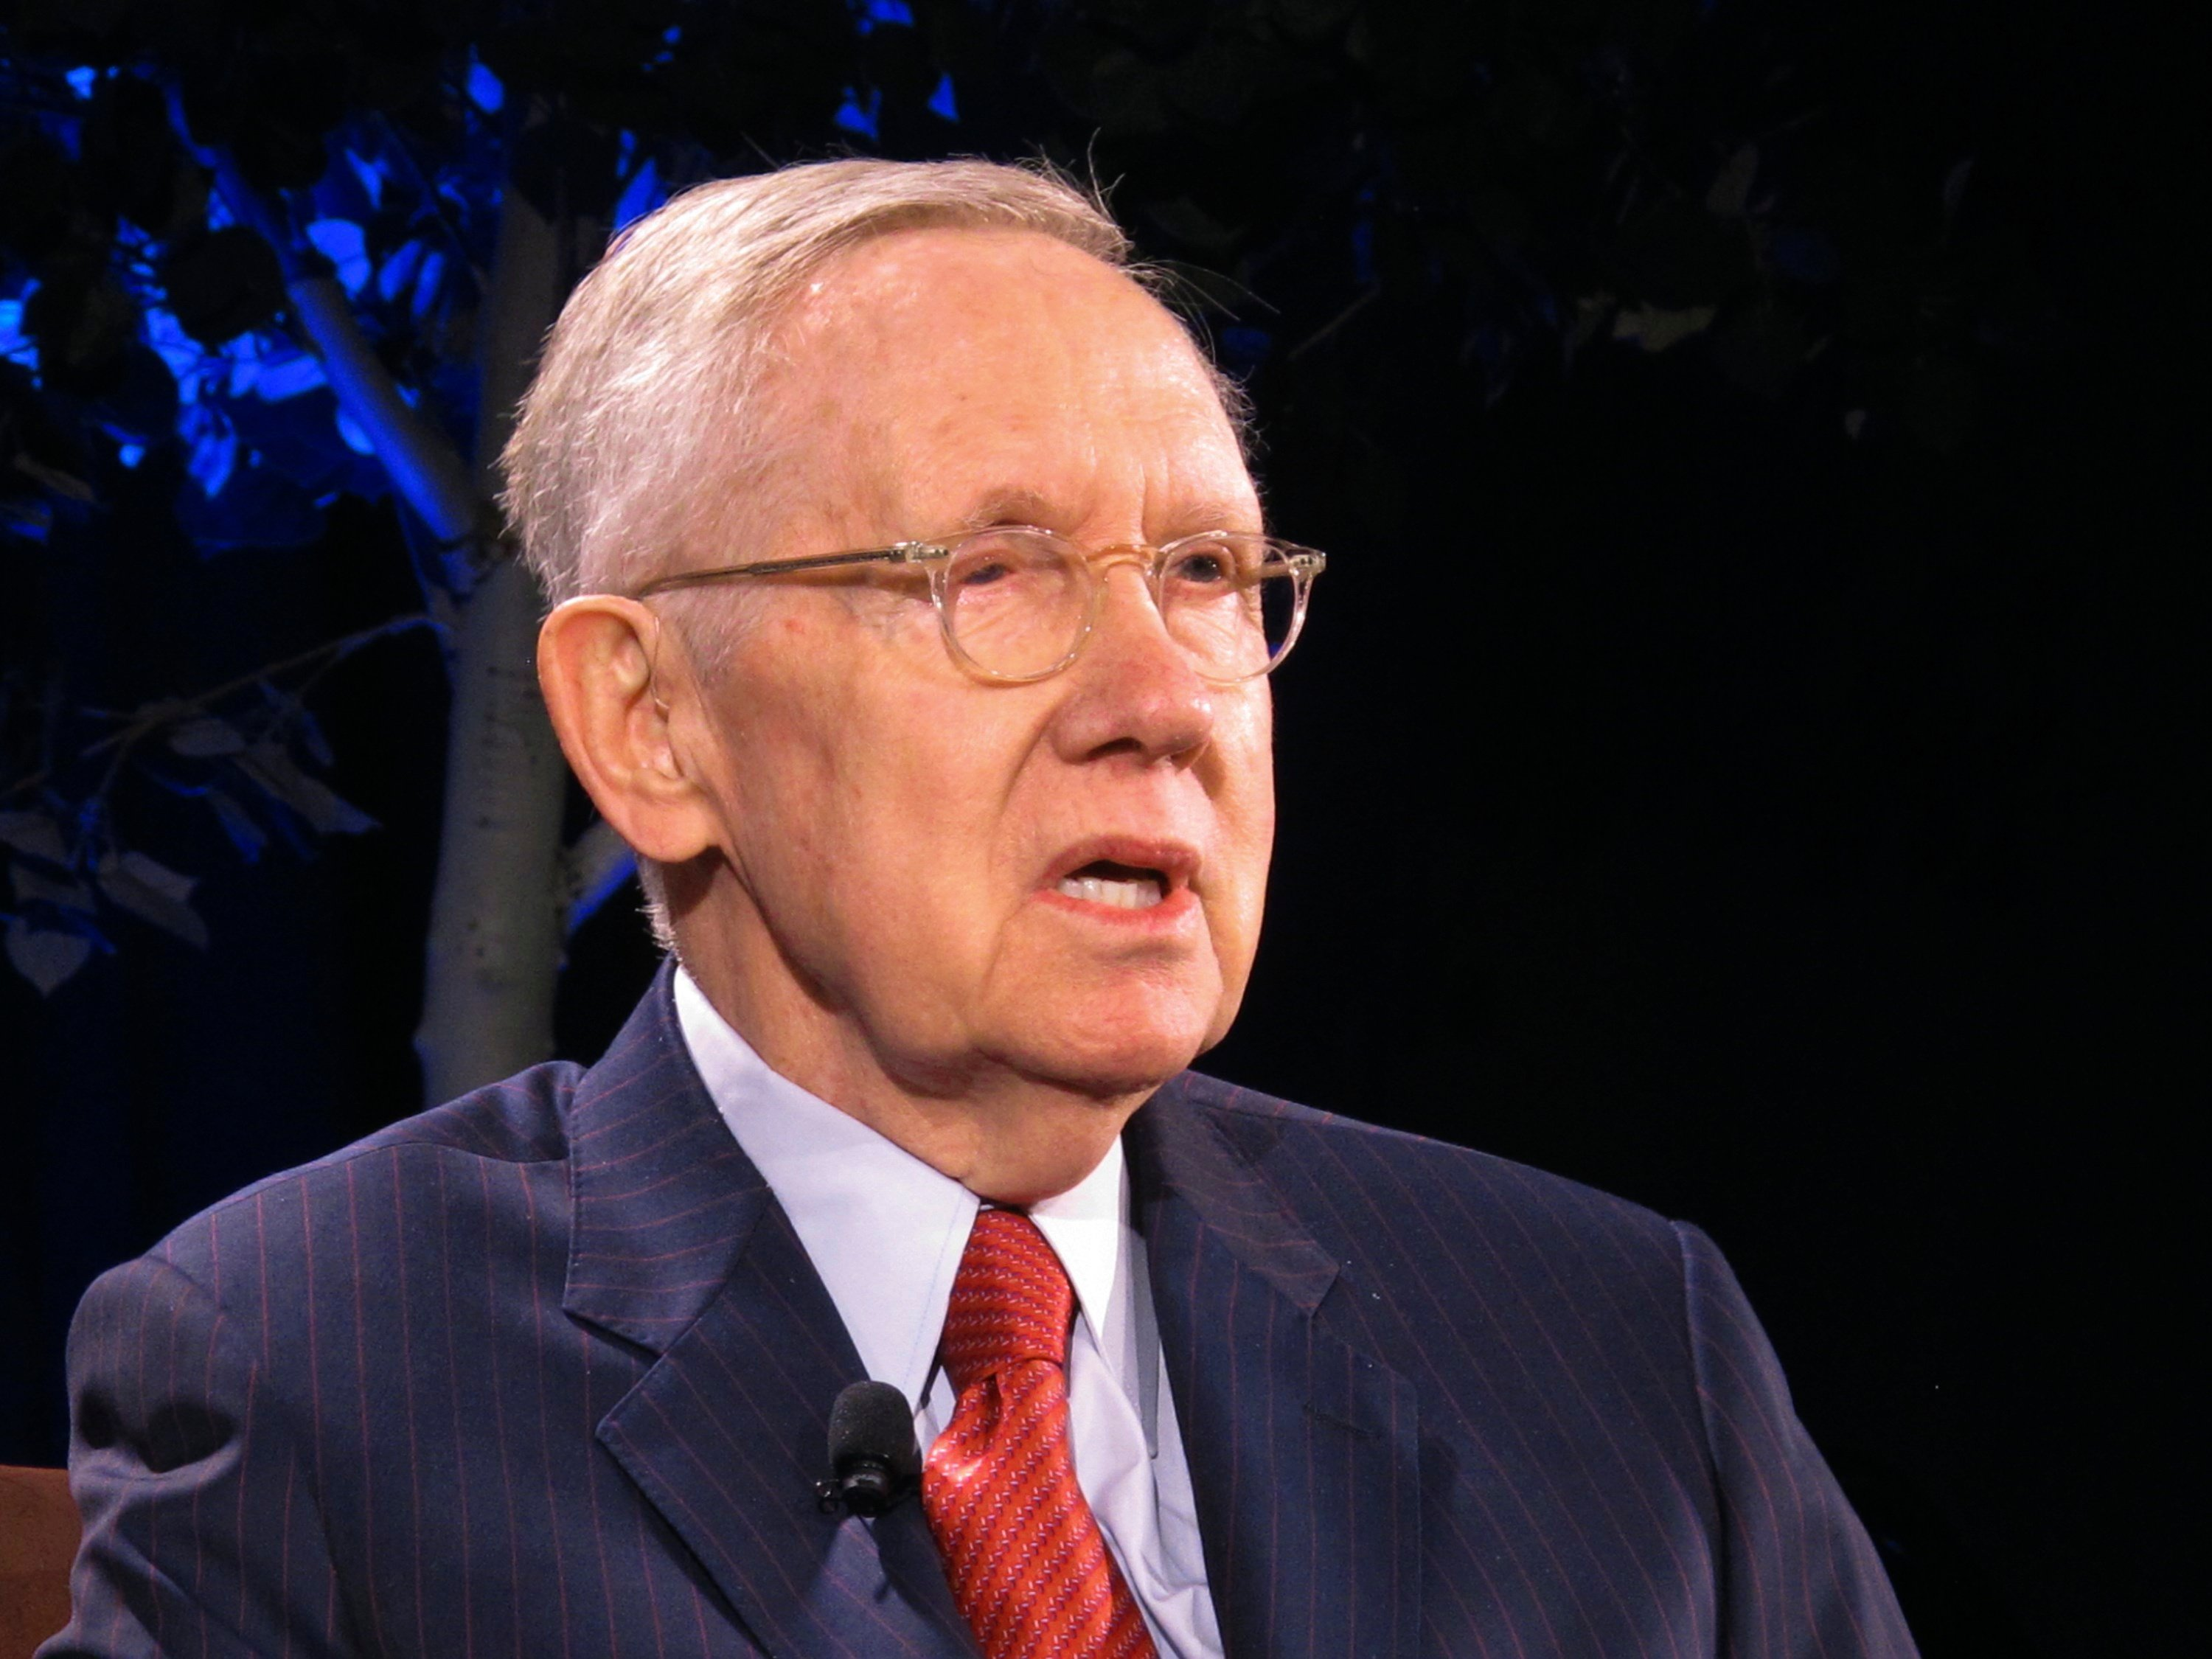 Ex-Democratic Senate leader Reid being treated for pancreatic cancer